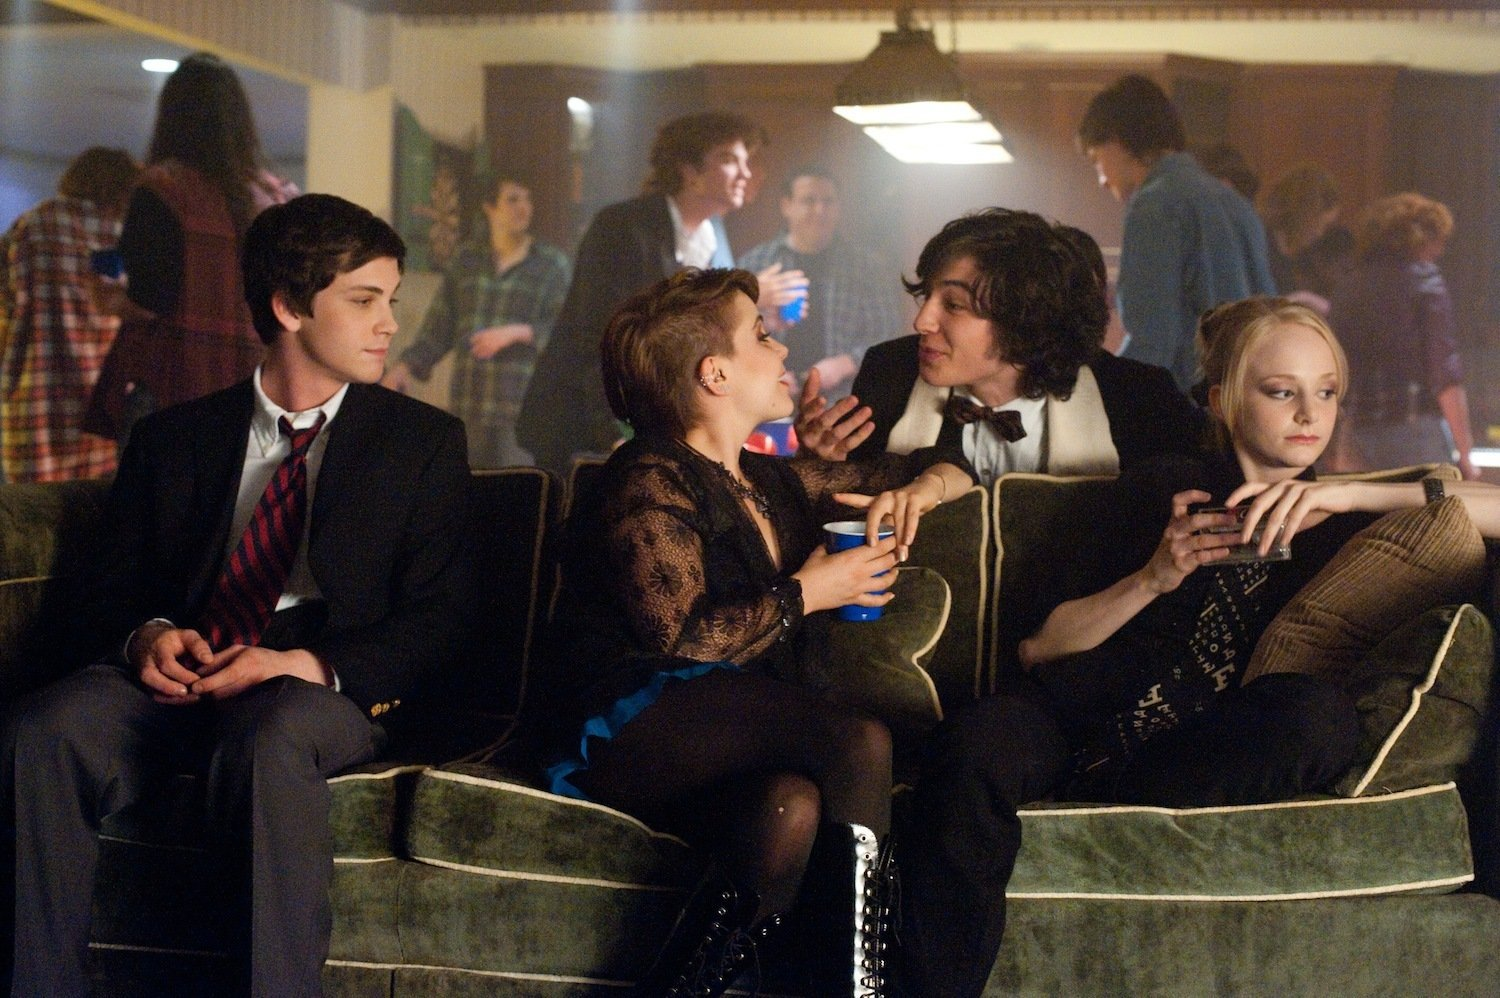 Watch The Perks Of Being A Wallflower 2012 Full Movie Online With his friends gone, he turns to his older sister, who is revealed to have been used as an excuse by aunt helen to keep charlie. the perks of being a wallflower 2012